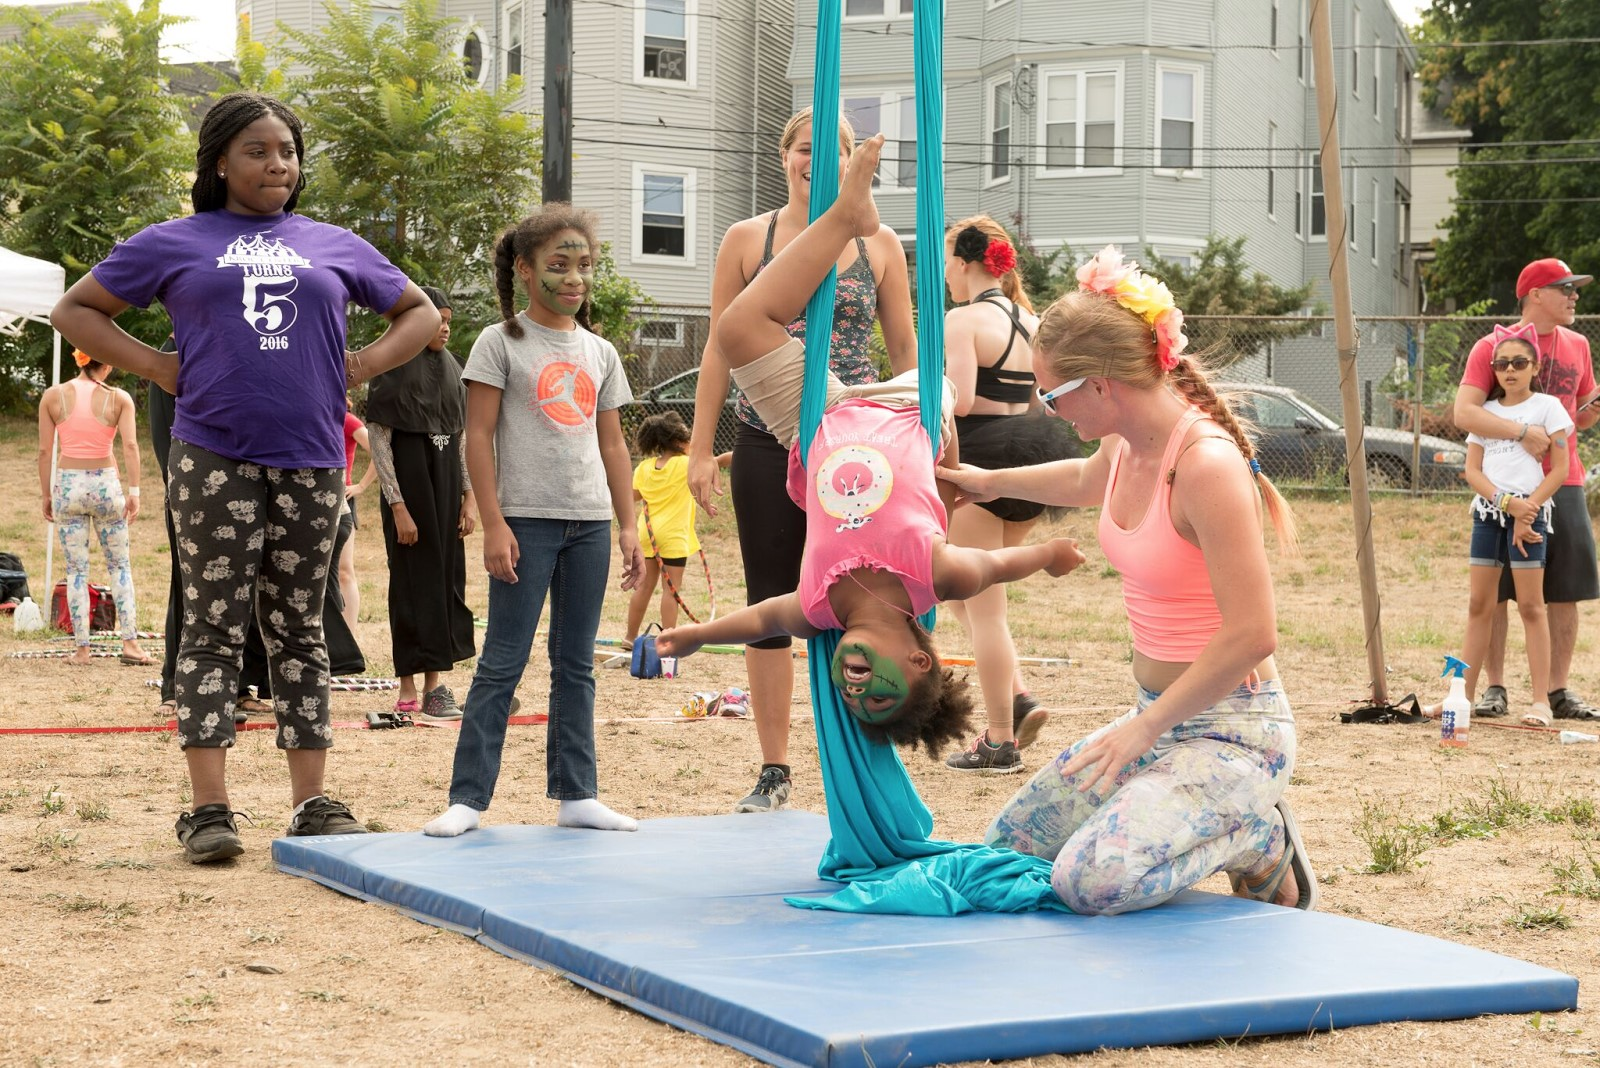 A Circus Up performer teaches a little girl at DSNI's 28th Annual Multicultural Festival. Image shows a little girl, with her face painted, hanging upside down from blue fabric, being helped by a performer at Mary Hannon Park in Dorchester. Photography by Mark Fusco.